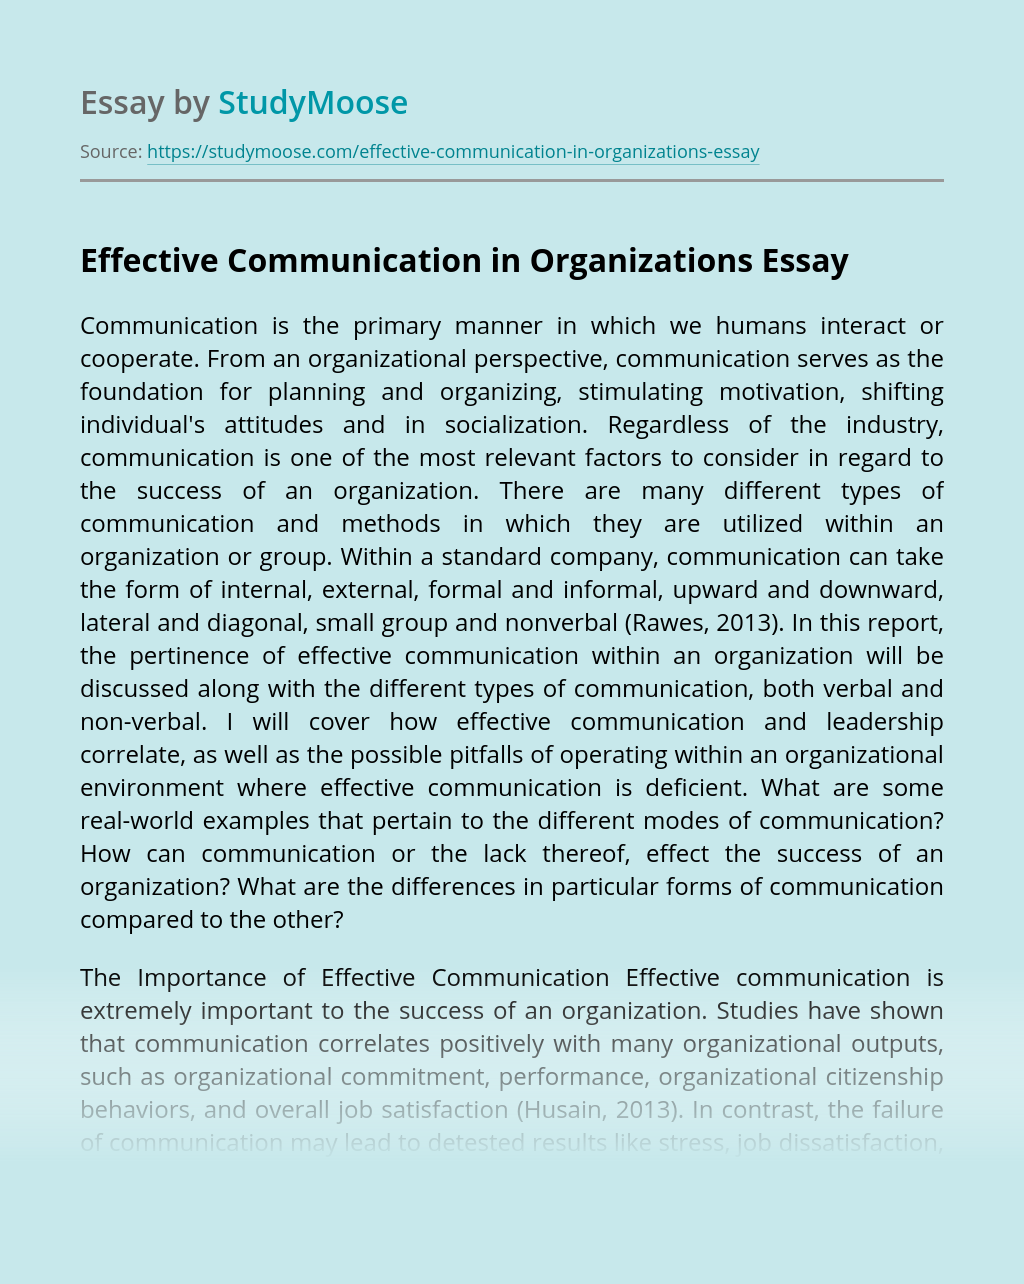 Effective Communication in Organizations